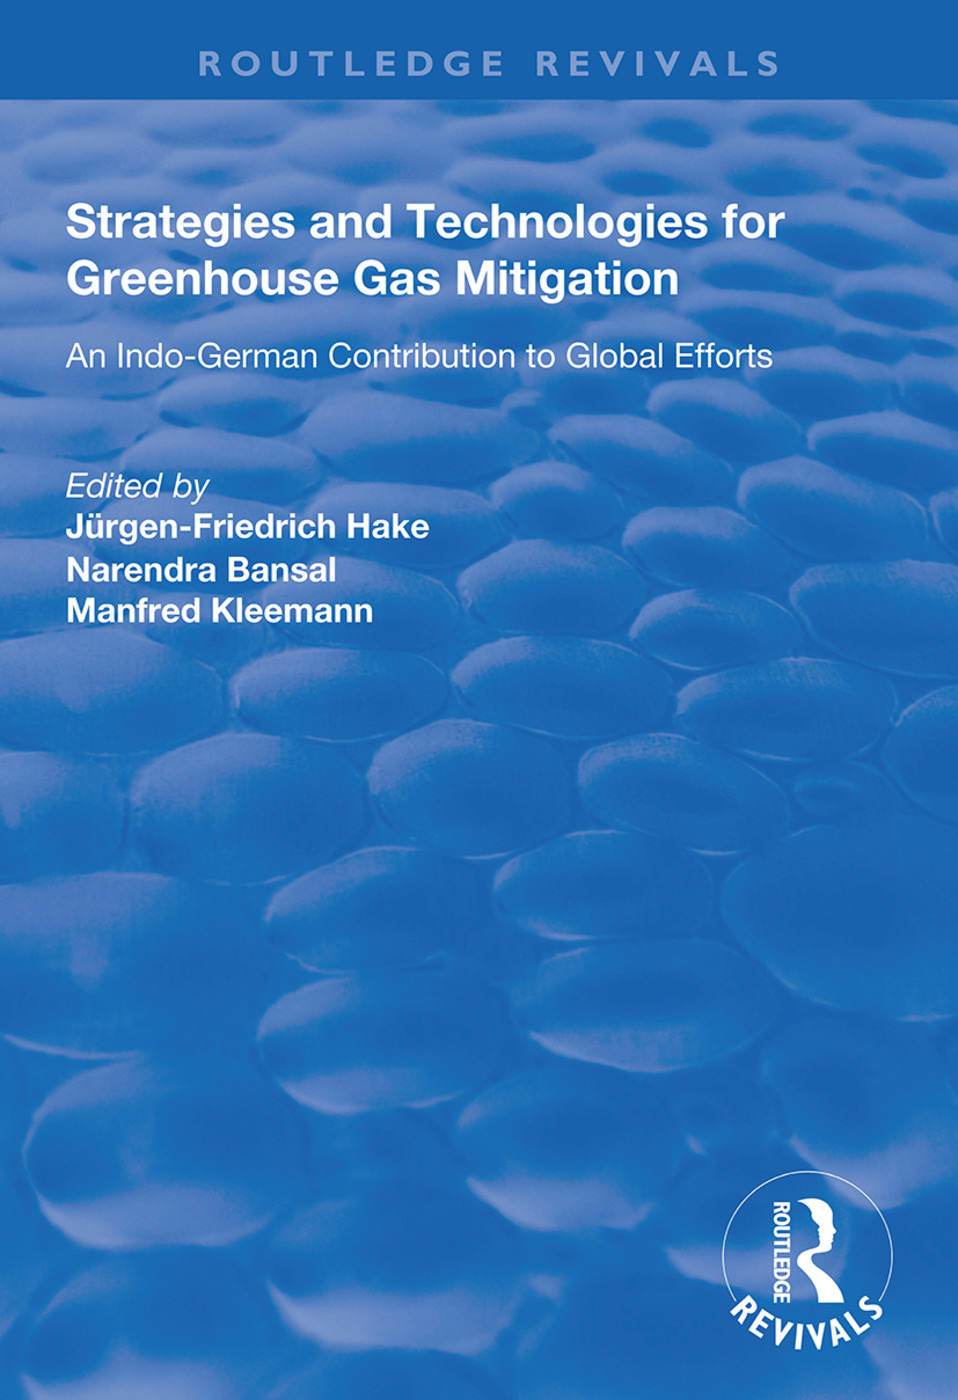 Strategies and Technologies for Greenhouse Gas Mitigation: An Indo-German Contribution to Global Efforts book cover